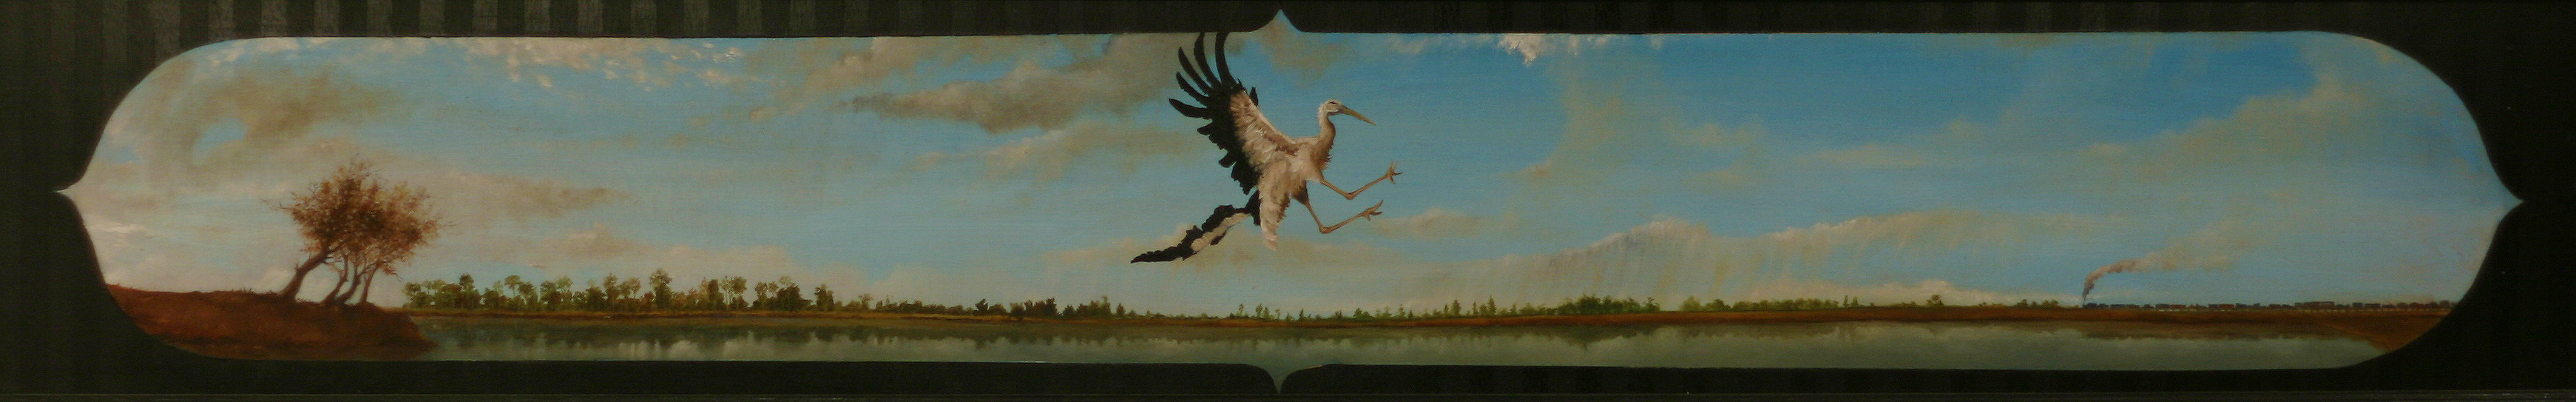 """Marshes"" 8x36 oil and acrylic on wood 2010"